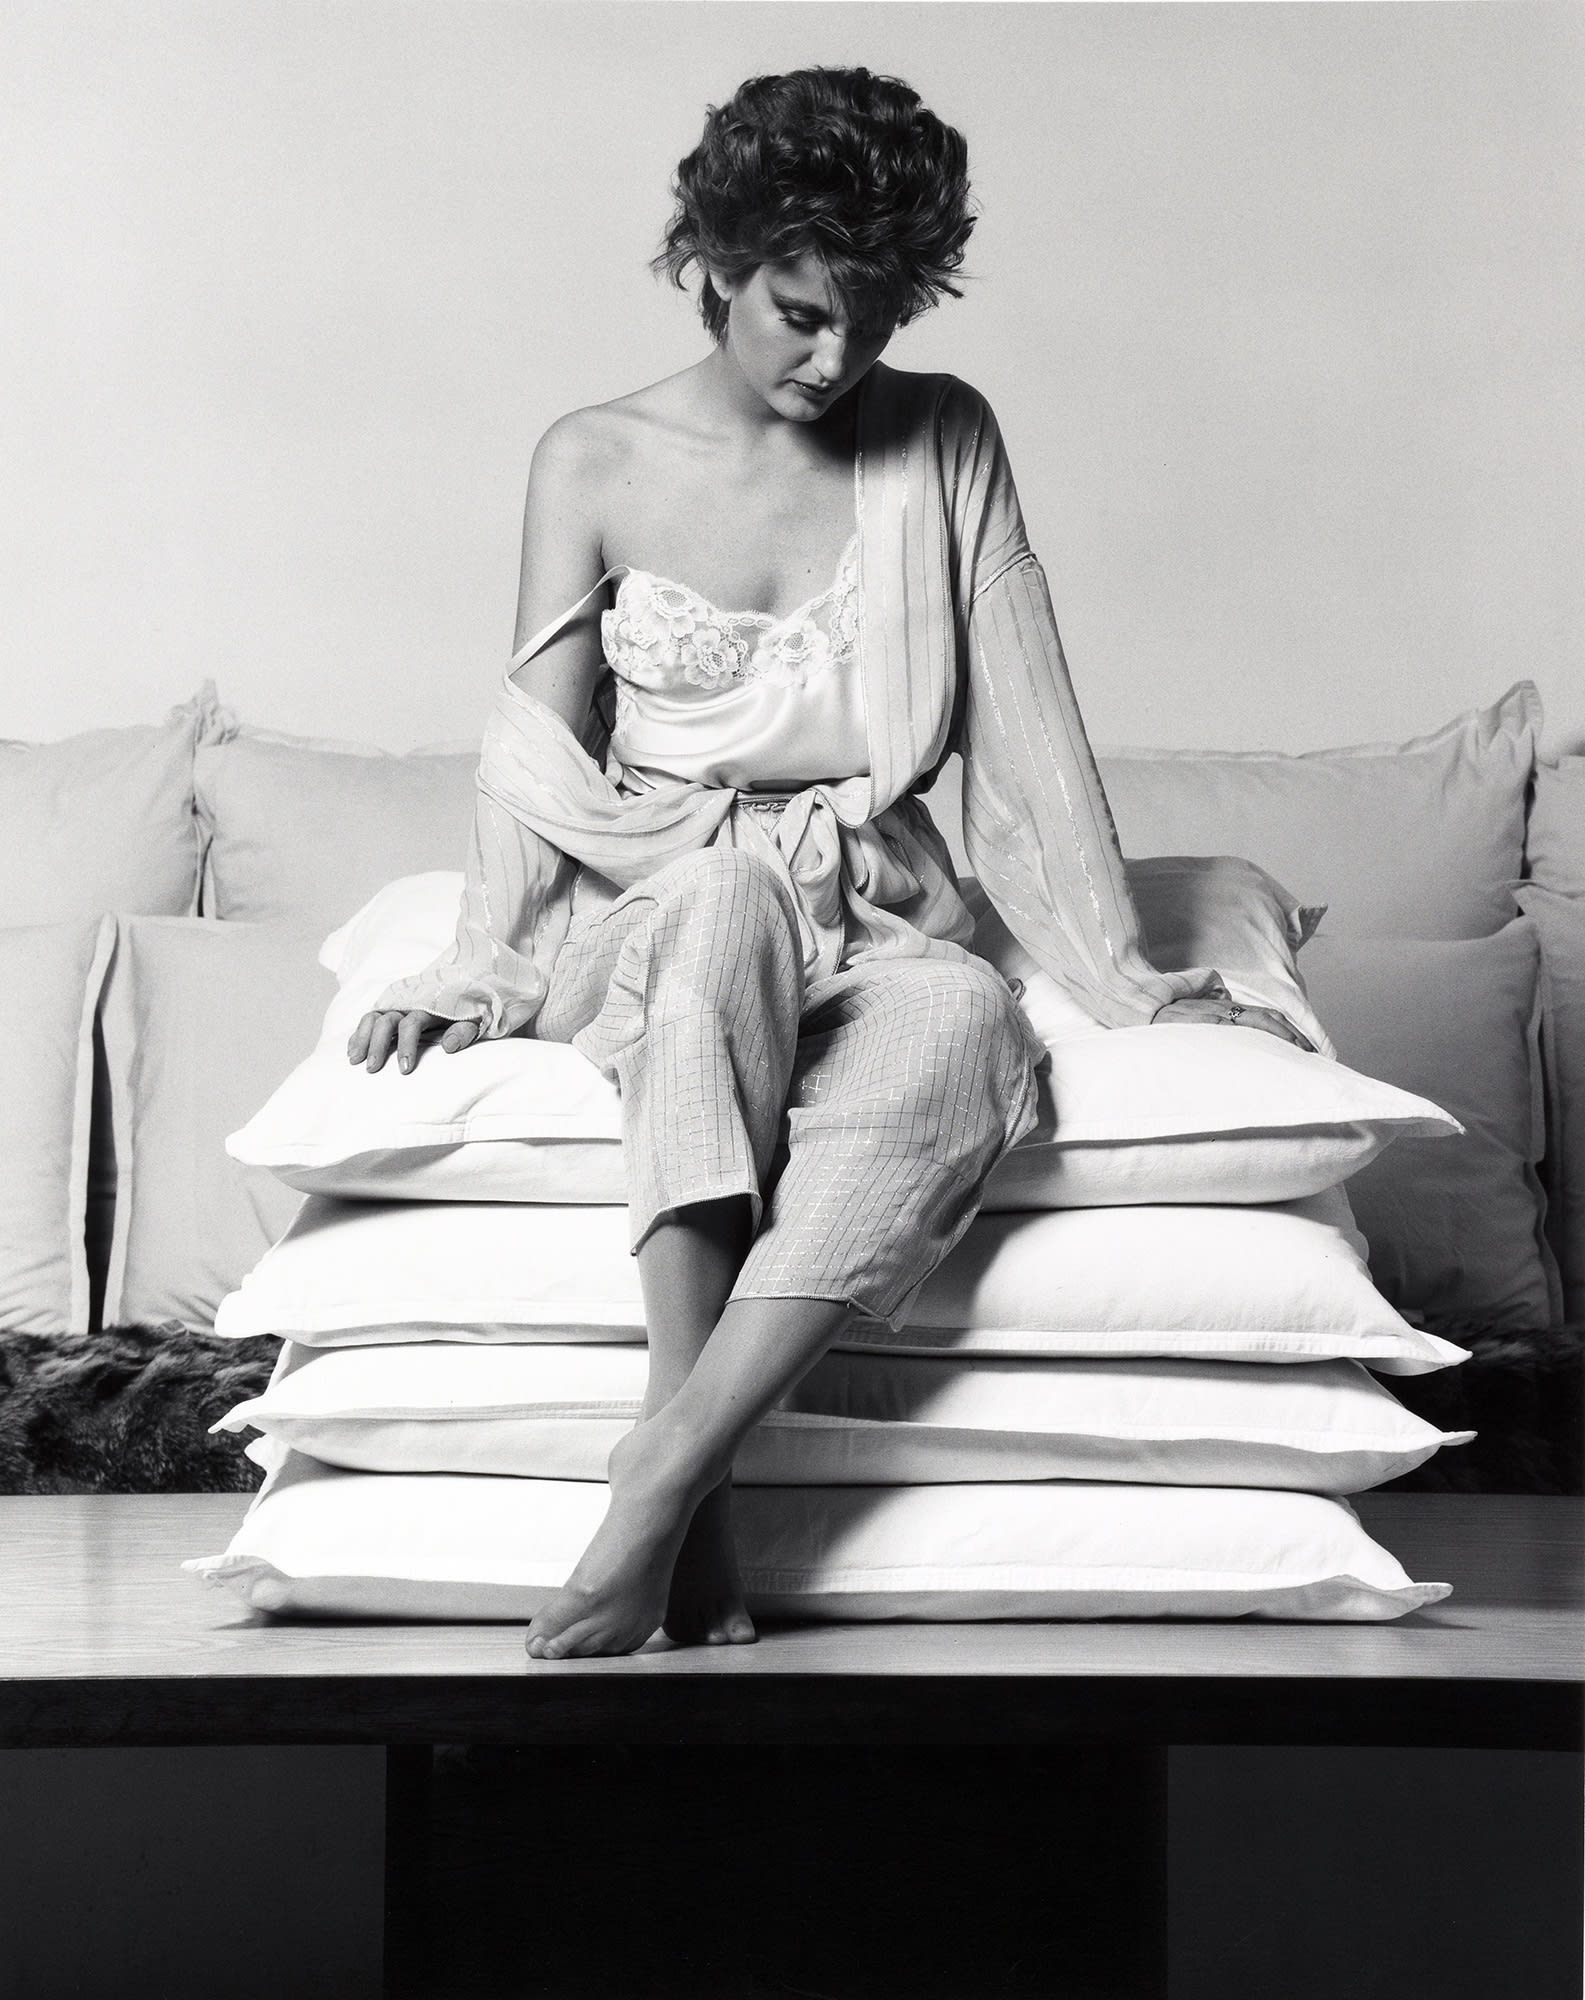 Robert Mapplethorpe Intérieur Jour curated by Jean-Marc Bustamante